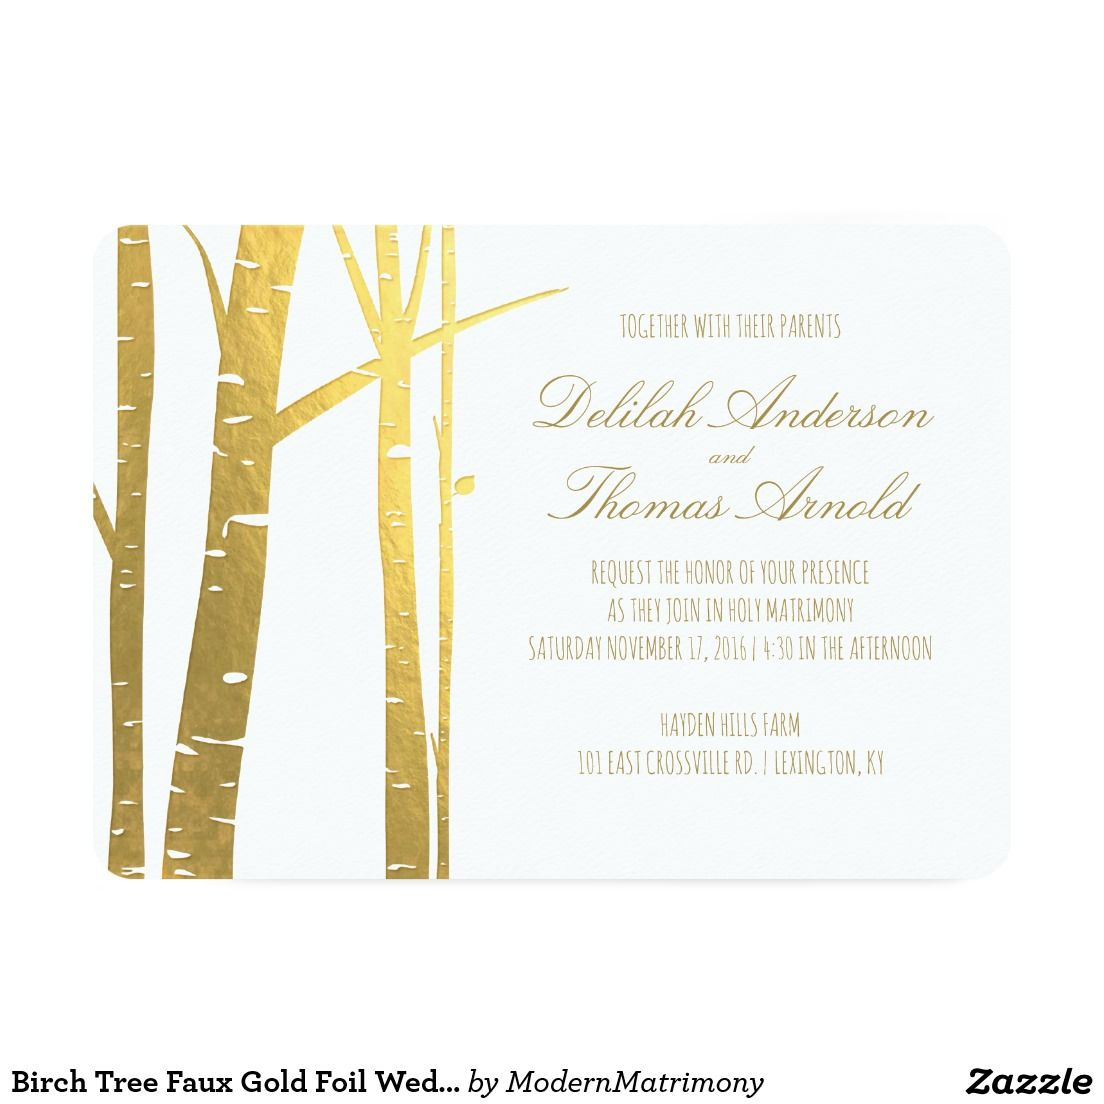 Birch Tree Faux Gold Foil Wedding Invitation Zazzle Goldfoil